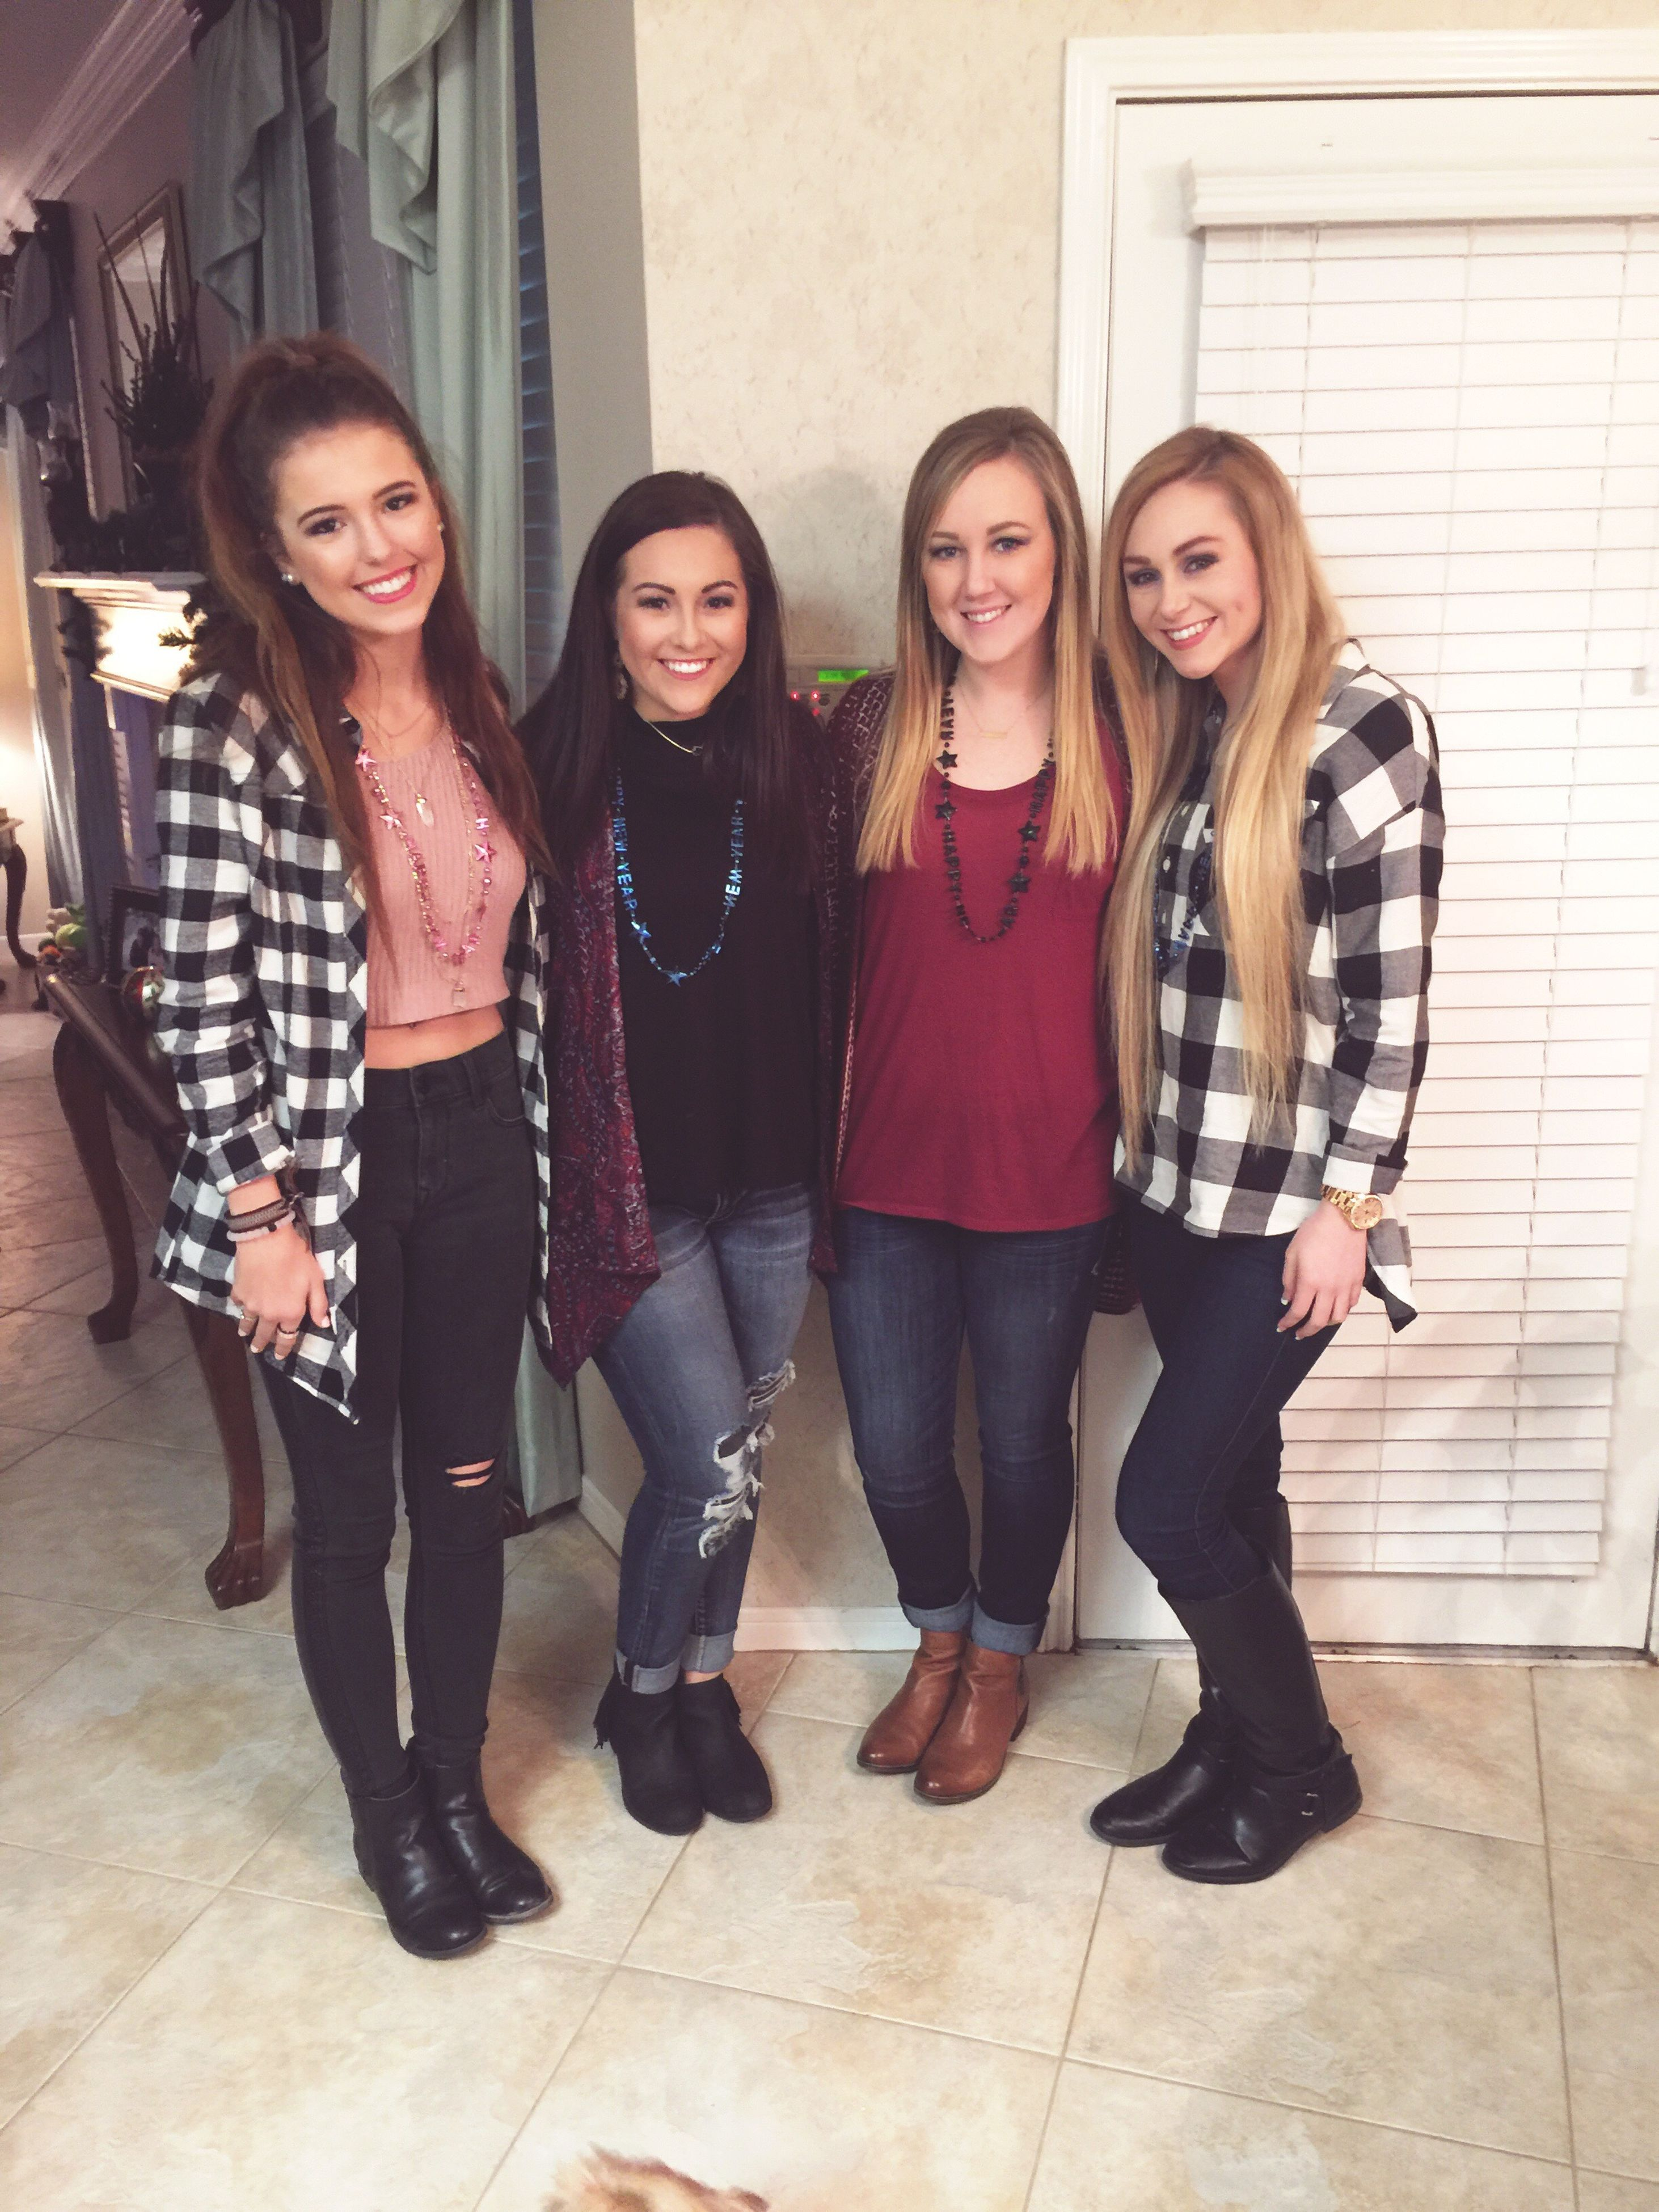 lifestyles, young adult, togetherness, person, bonding, young women, leisure activity, front view, looking at camera, casual clothing, smiling, portrait, happiness, friendship, standing, love, full length, indoors